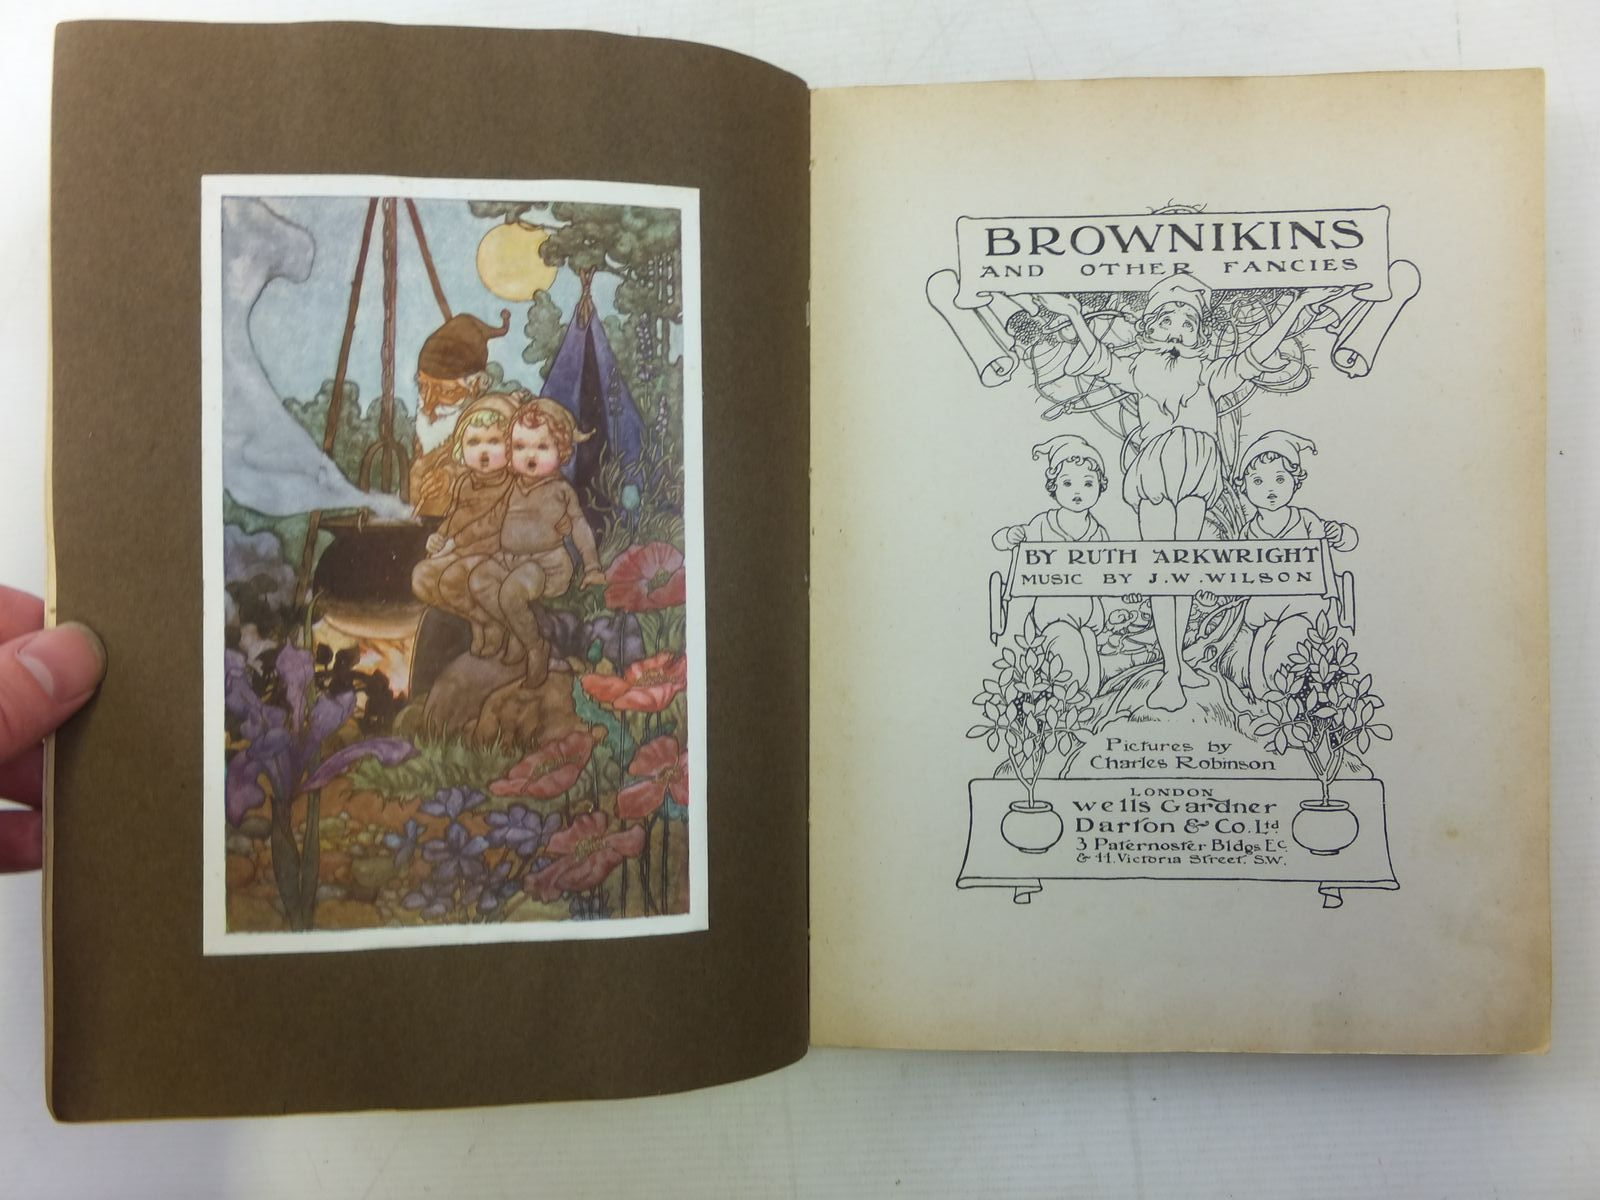 Photo of BROWNIKINS AND OTHER FANCIES written by Arkwright, Ruth illustrated by Robinson, Charles published by Wells Gardner, Darton & Co. Ltd. (STOCK CODE: 2119802)  for sale by Stella & Rose's Books